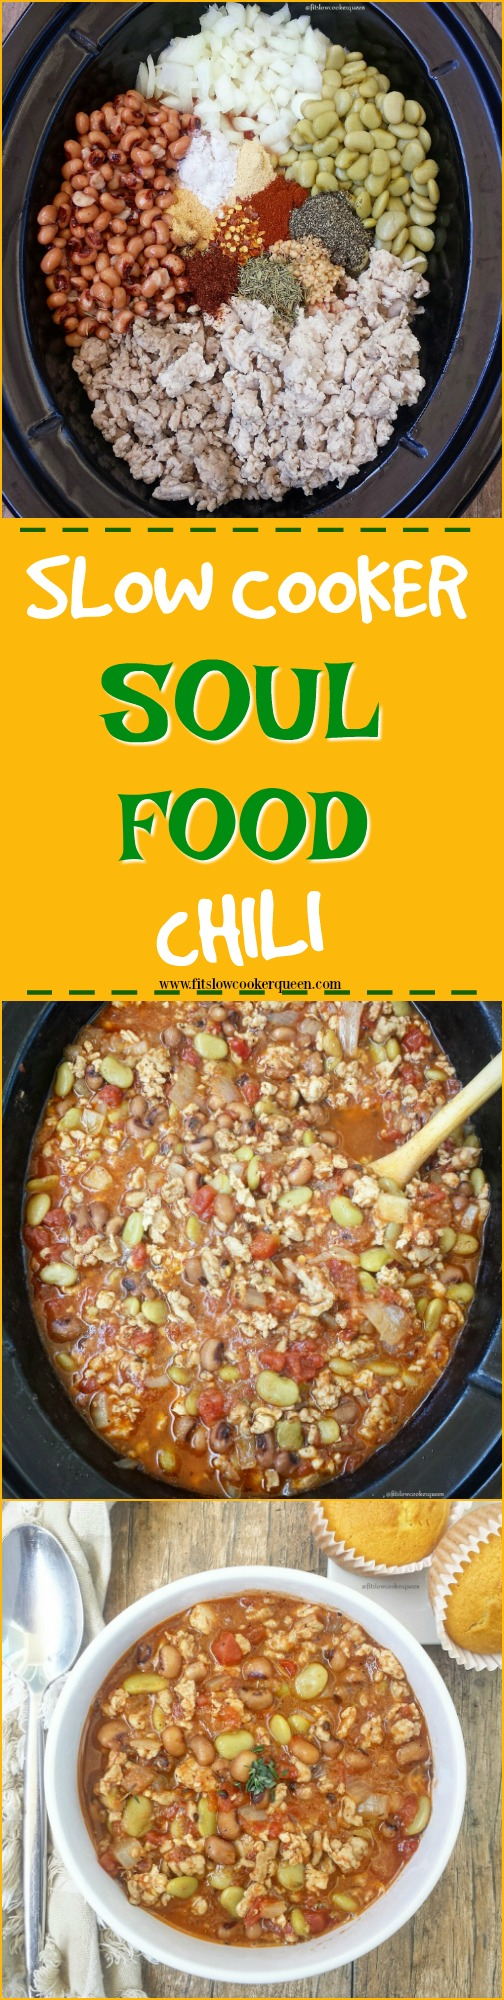 Soul food ingredients and flavors take over the slow cooker in this unique spin on chili. Not just healthy, it's quick cooking in just a couple hours.